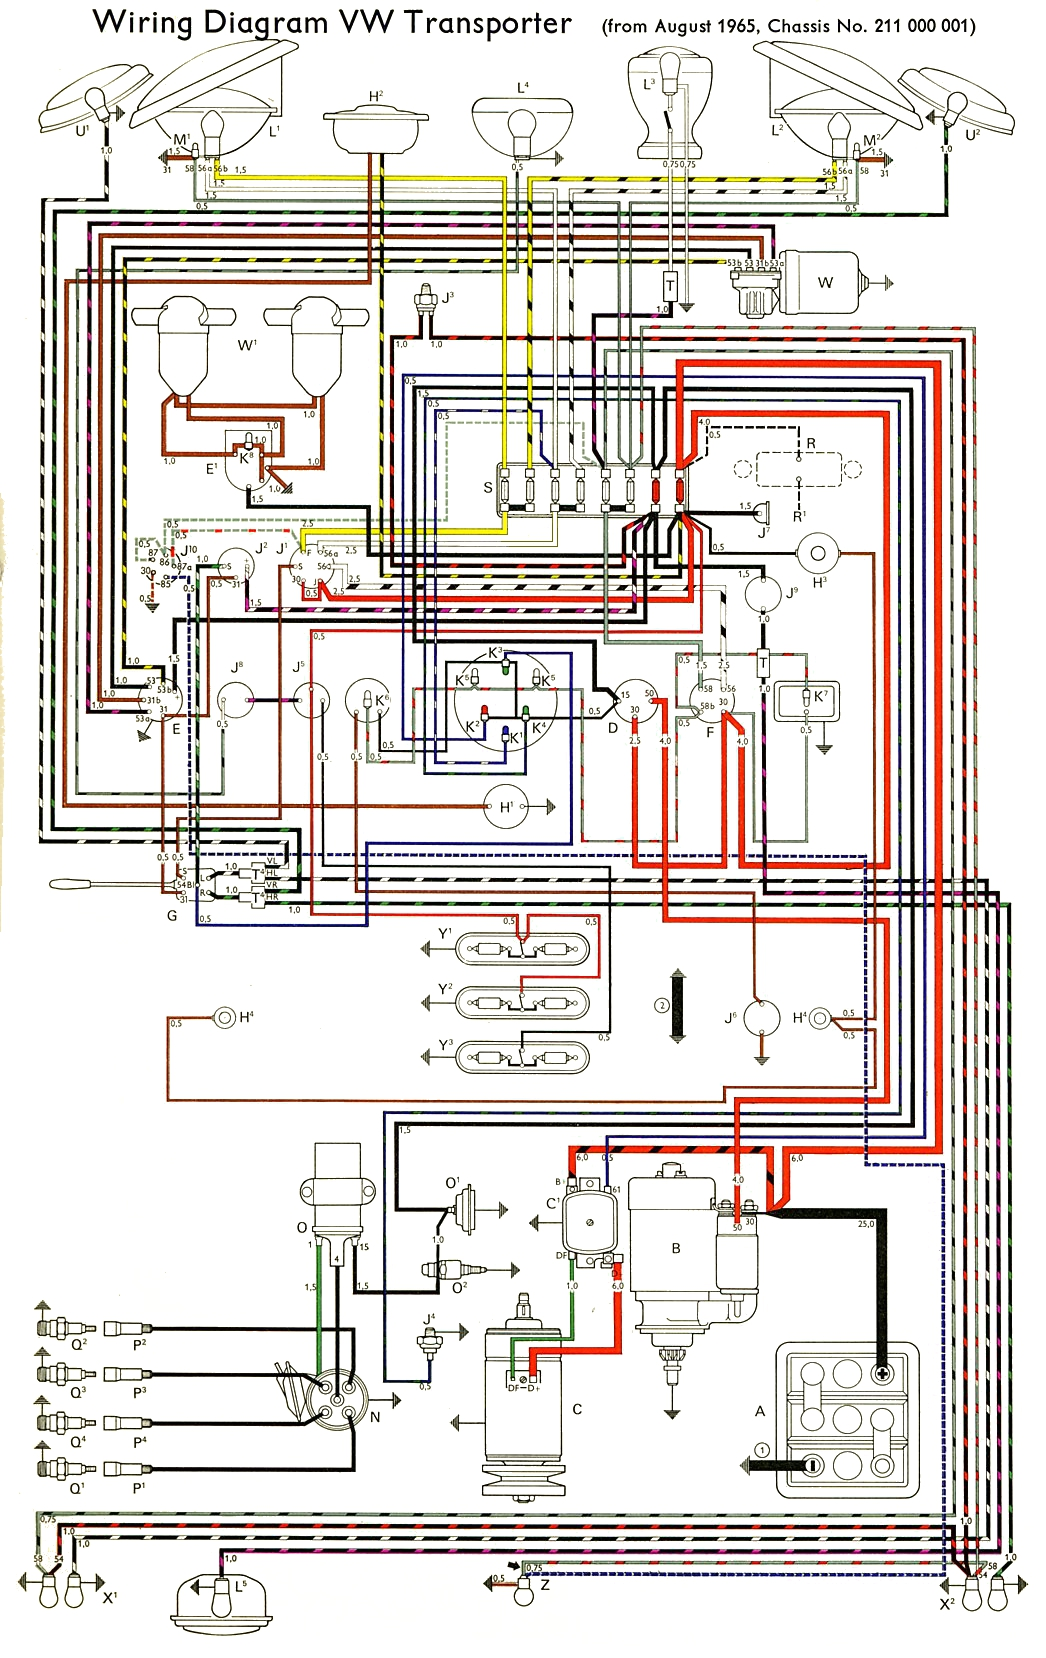 86 Club Car Ignition Wiring Diagram | Wiring Liry Ignition Wiring Harness on